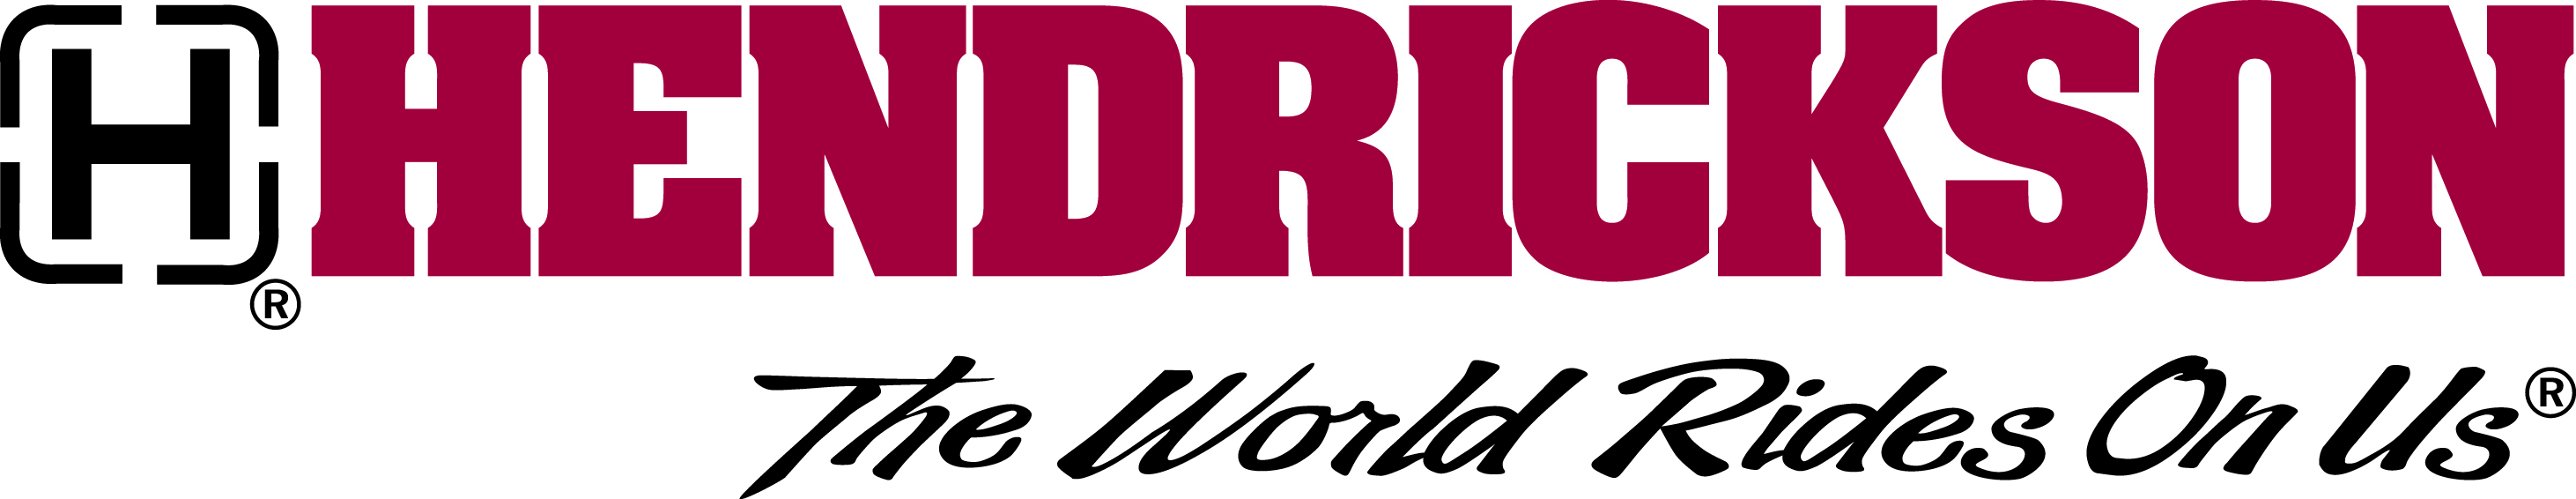 adjusted the world rides on us logos